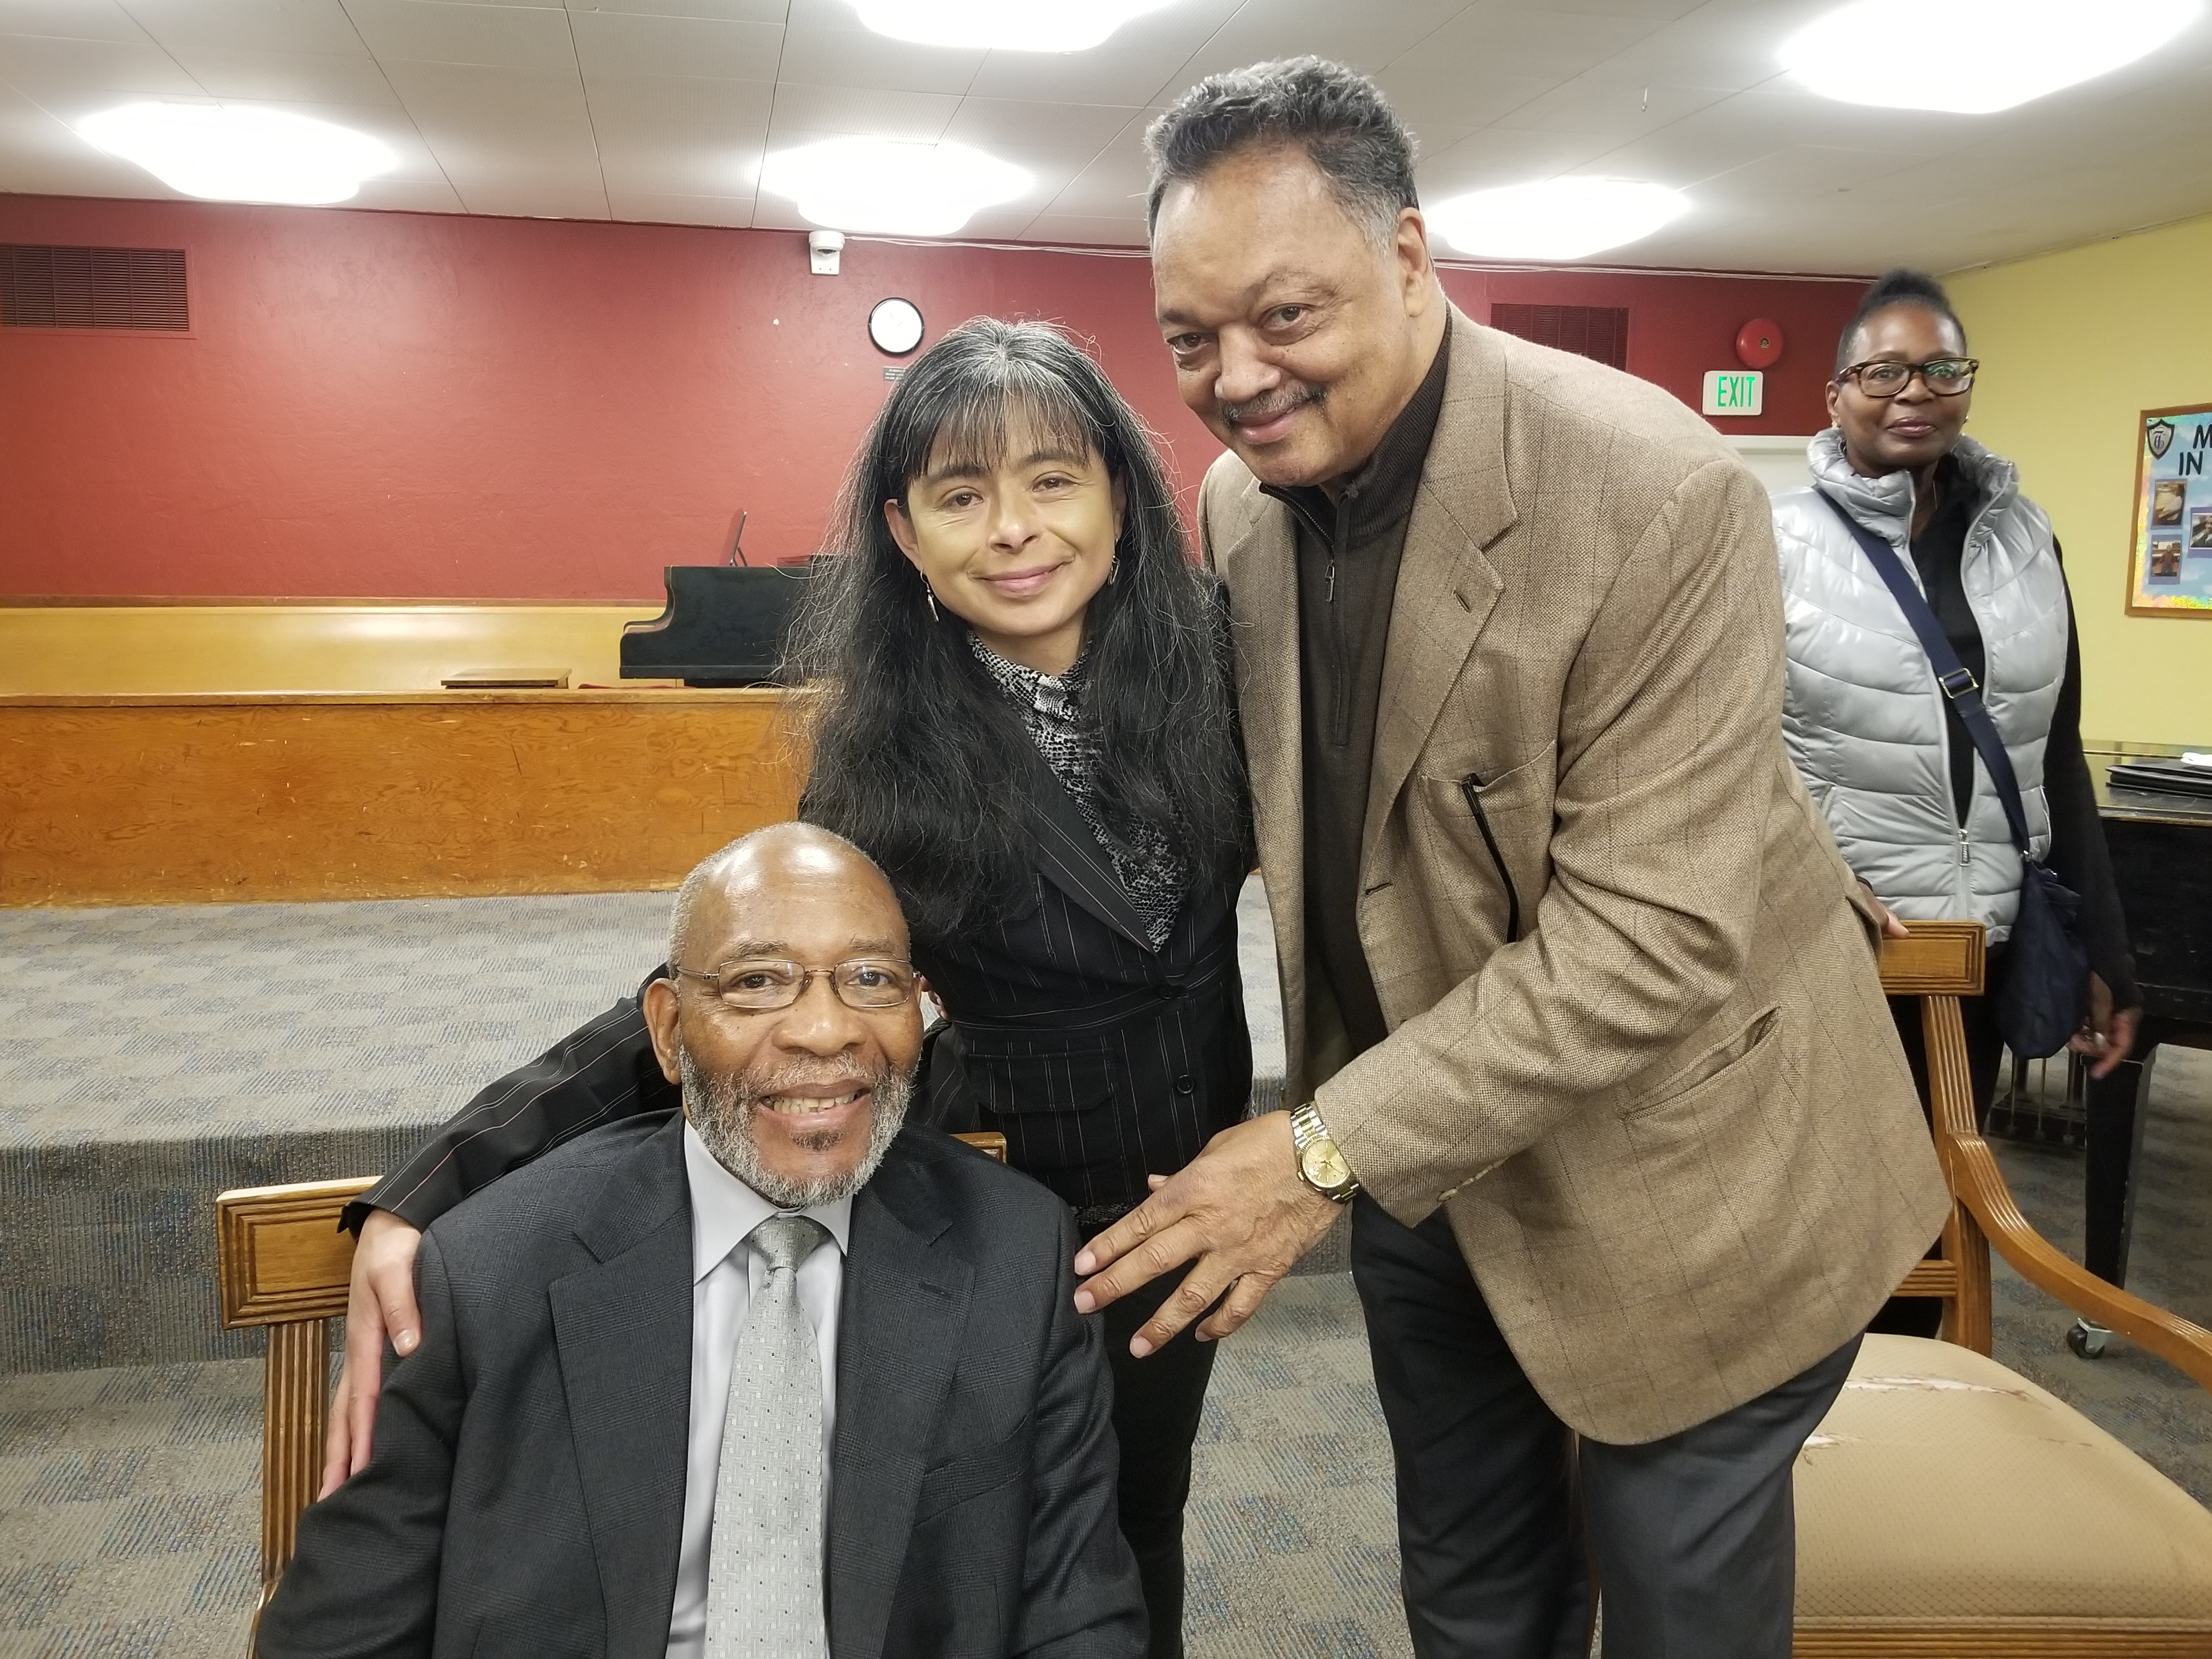 Catholic Charities CEO Jilma Meneses,  Rev. Dr. Amos Brown & Rev. Dr. Jesse Jackson stand with the Muslim community